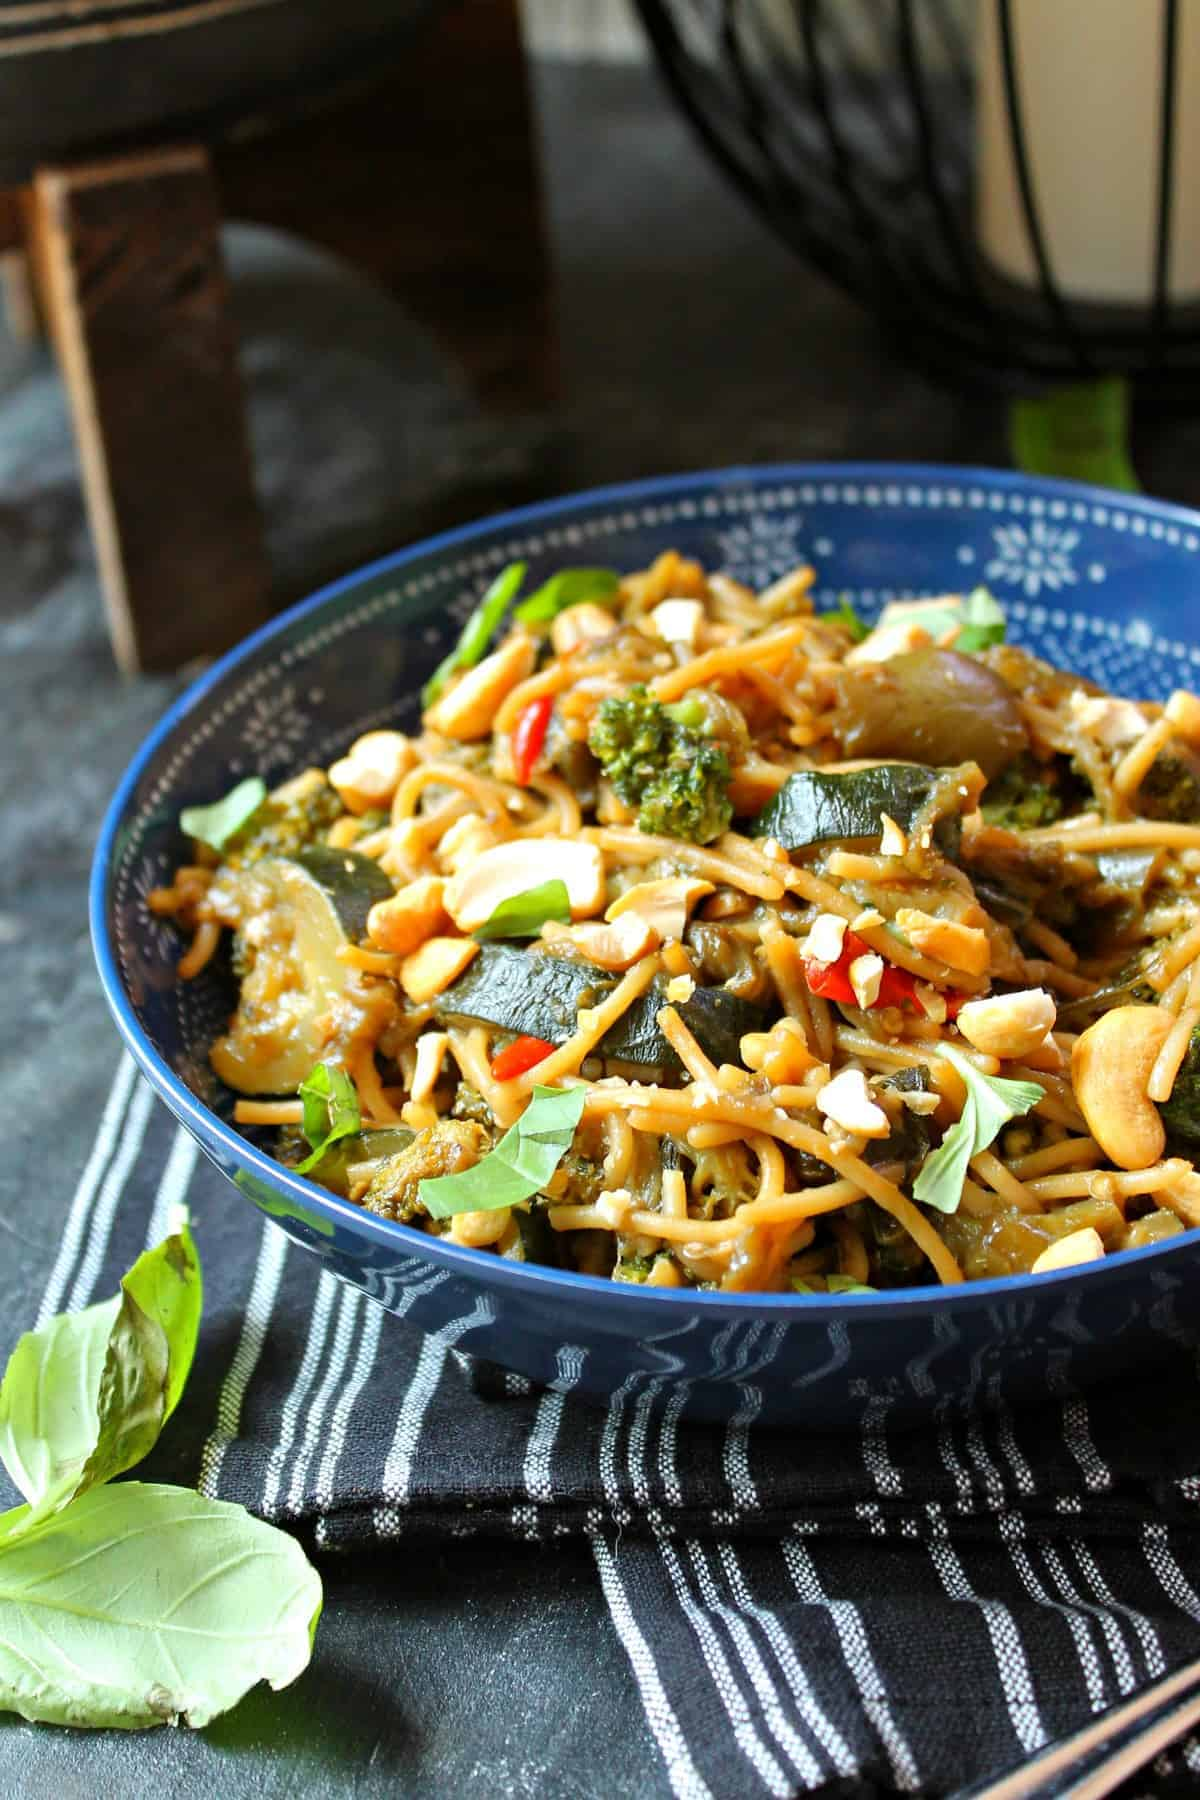 Spicy Thai Eggplant Stir Fry! Spice up your midweek meals with this simple dish made even quicker by using a Trader Joe's freezer item! Turn one little package into a hearty meal by adding just a few extra ingredients.